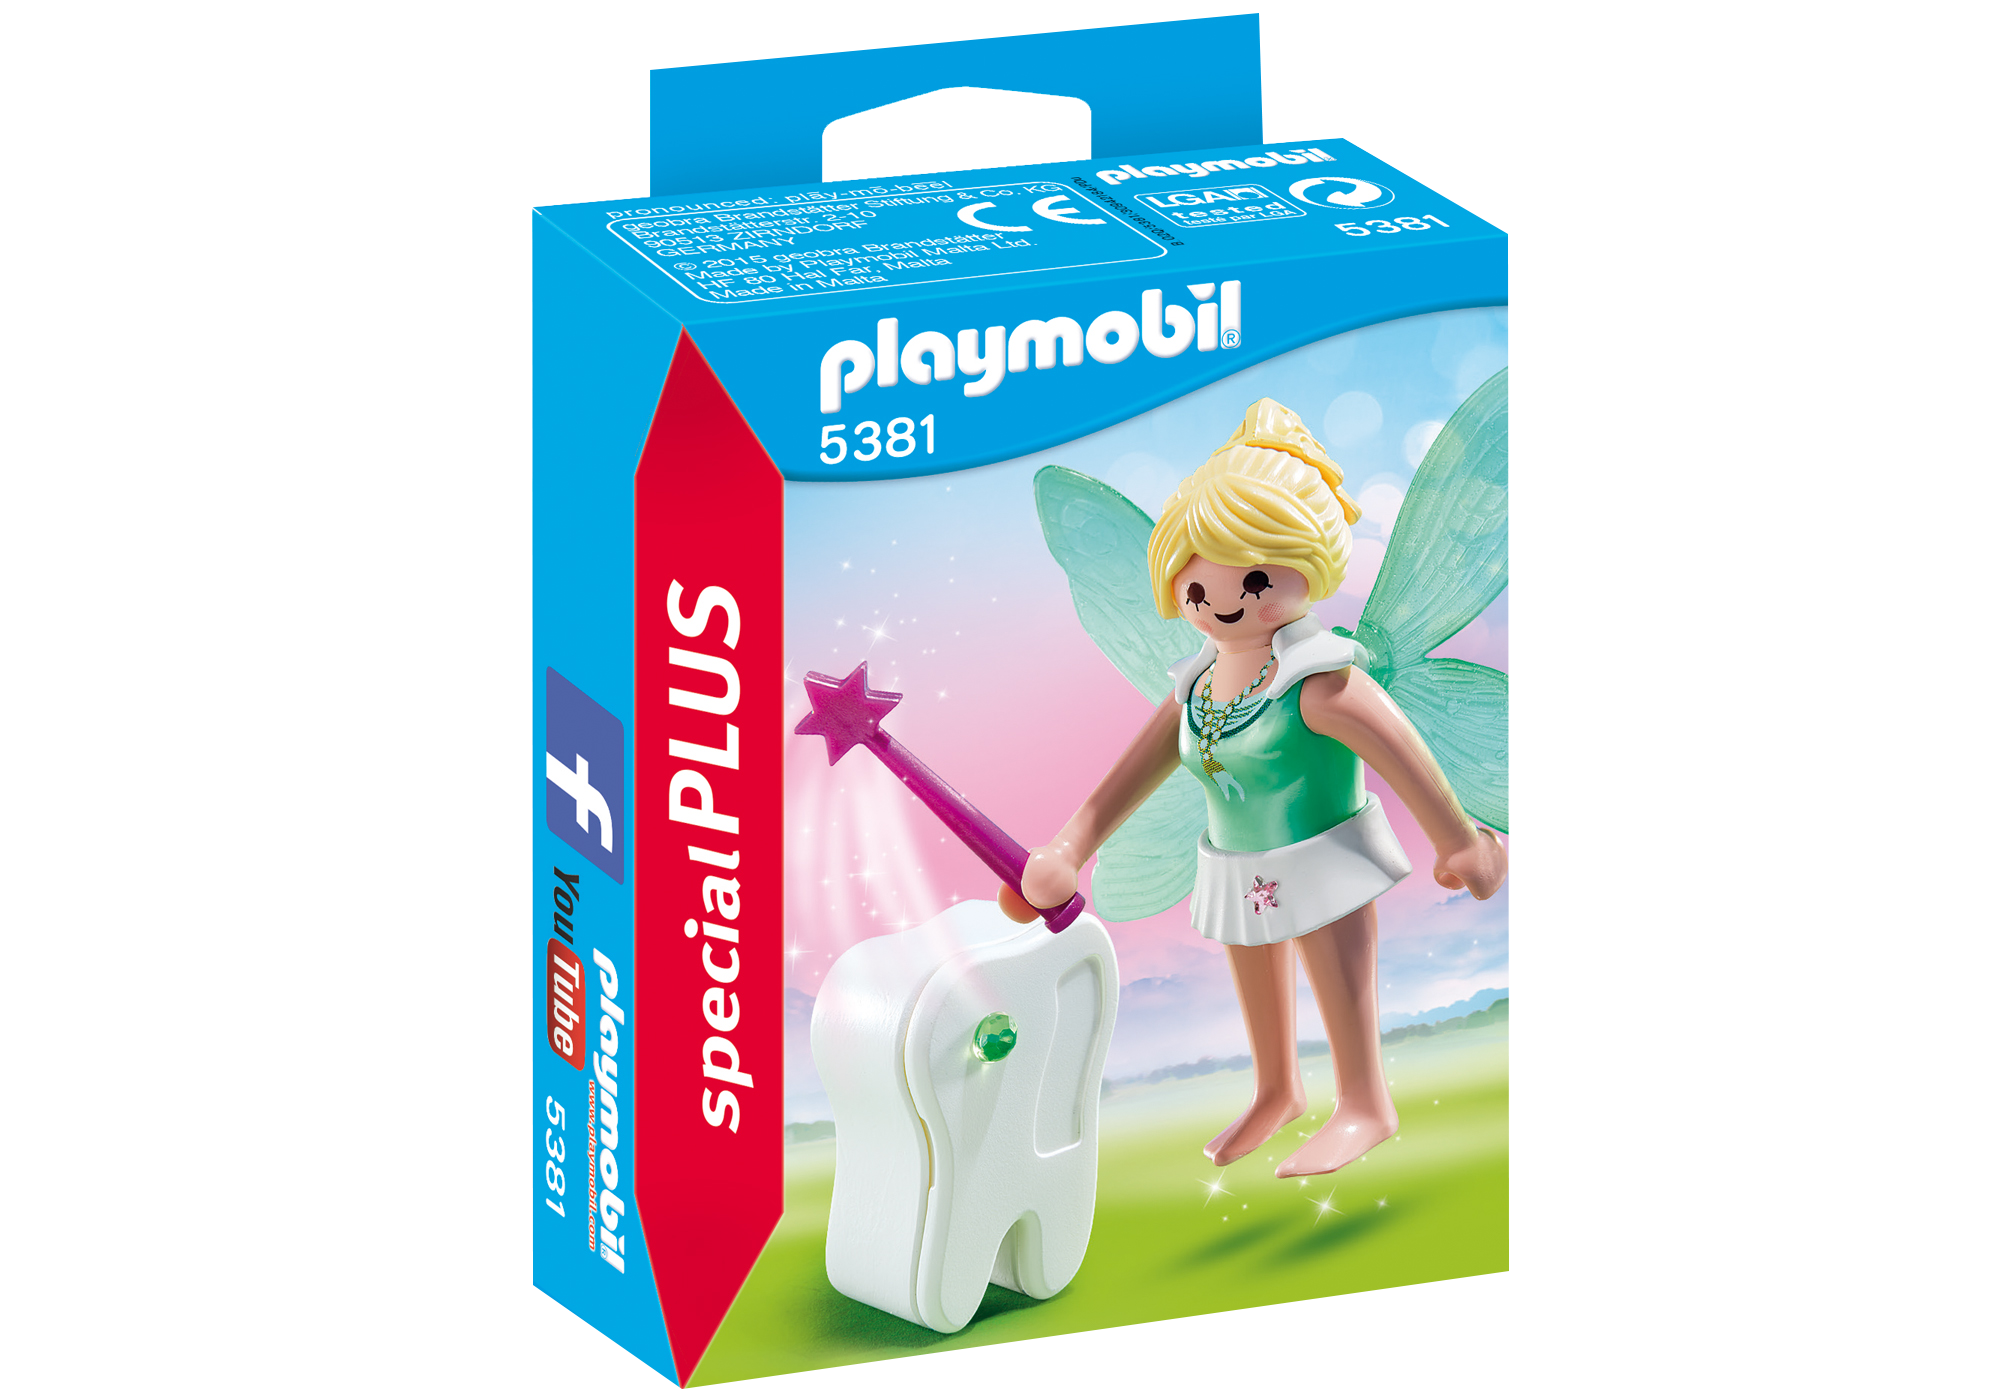 http://media.playmobil.com/i/playmobil/5381_product_box_front/Fée avec boîte à dents de lait